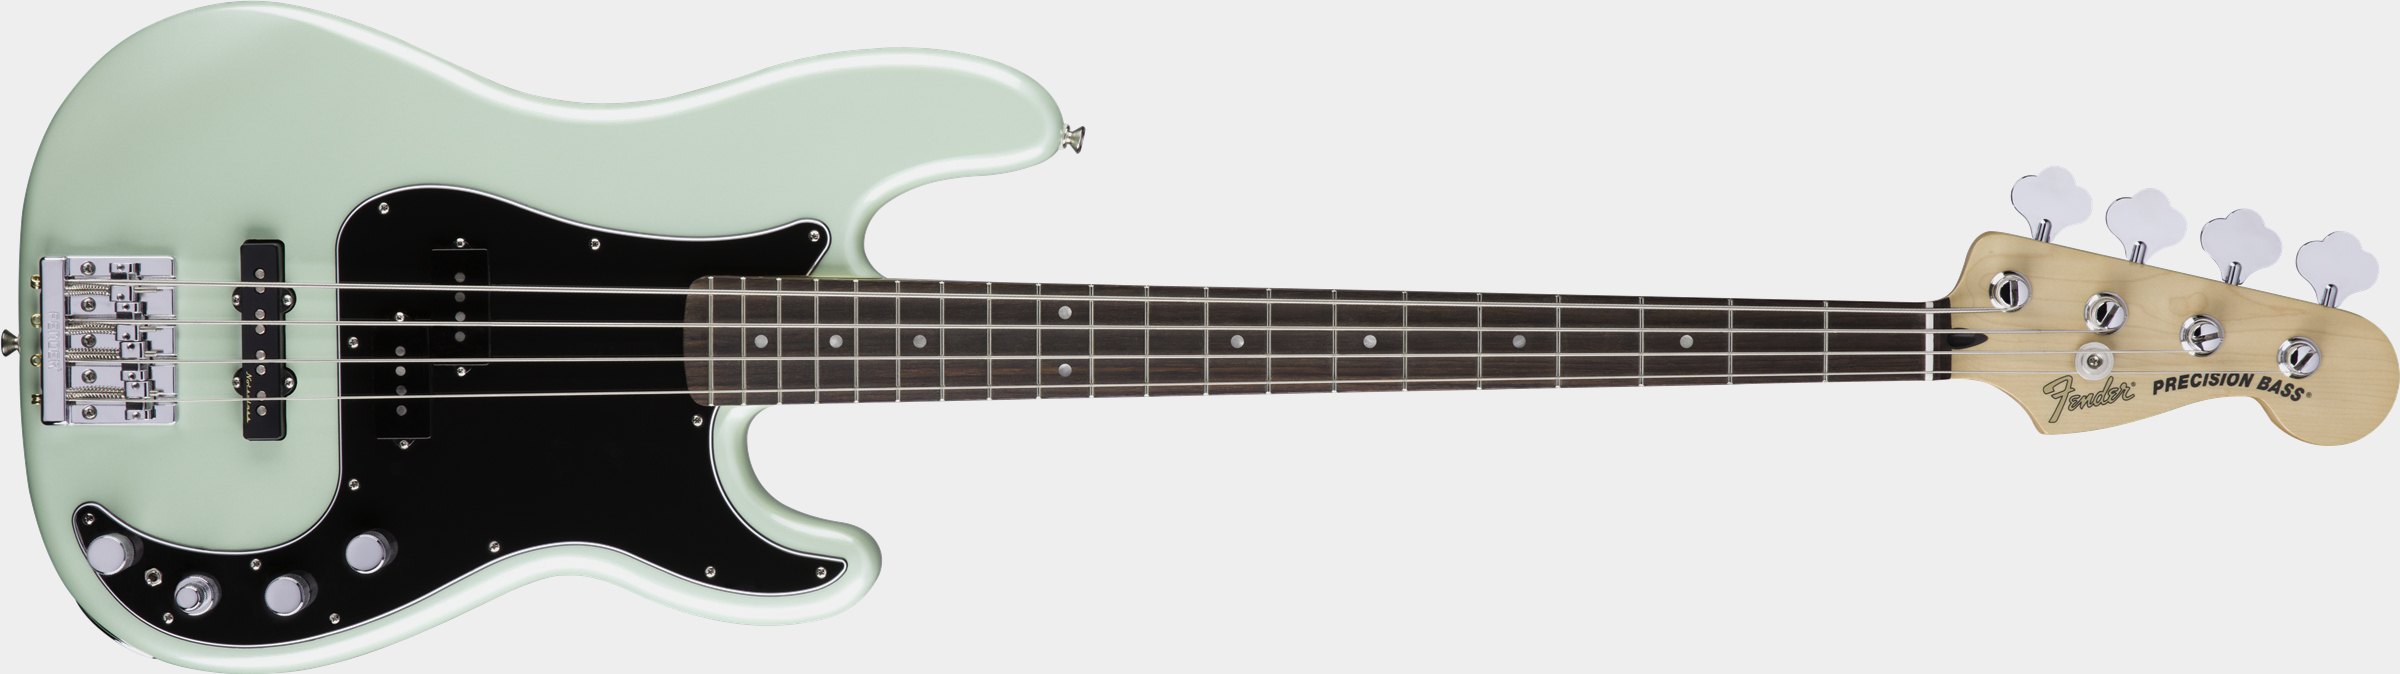 FENDER Deluxe Active Precision Bass Special RW Surf Pearl